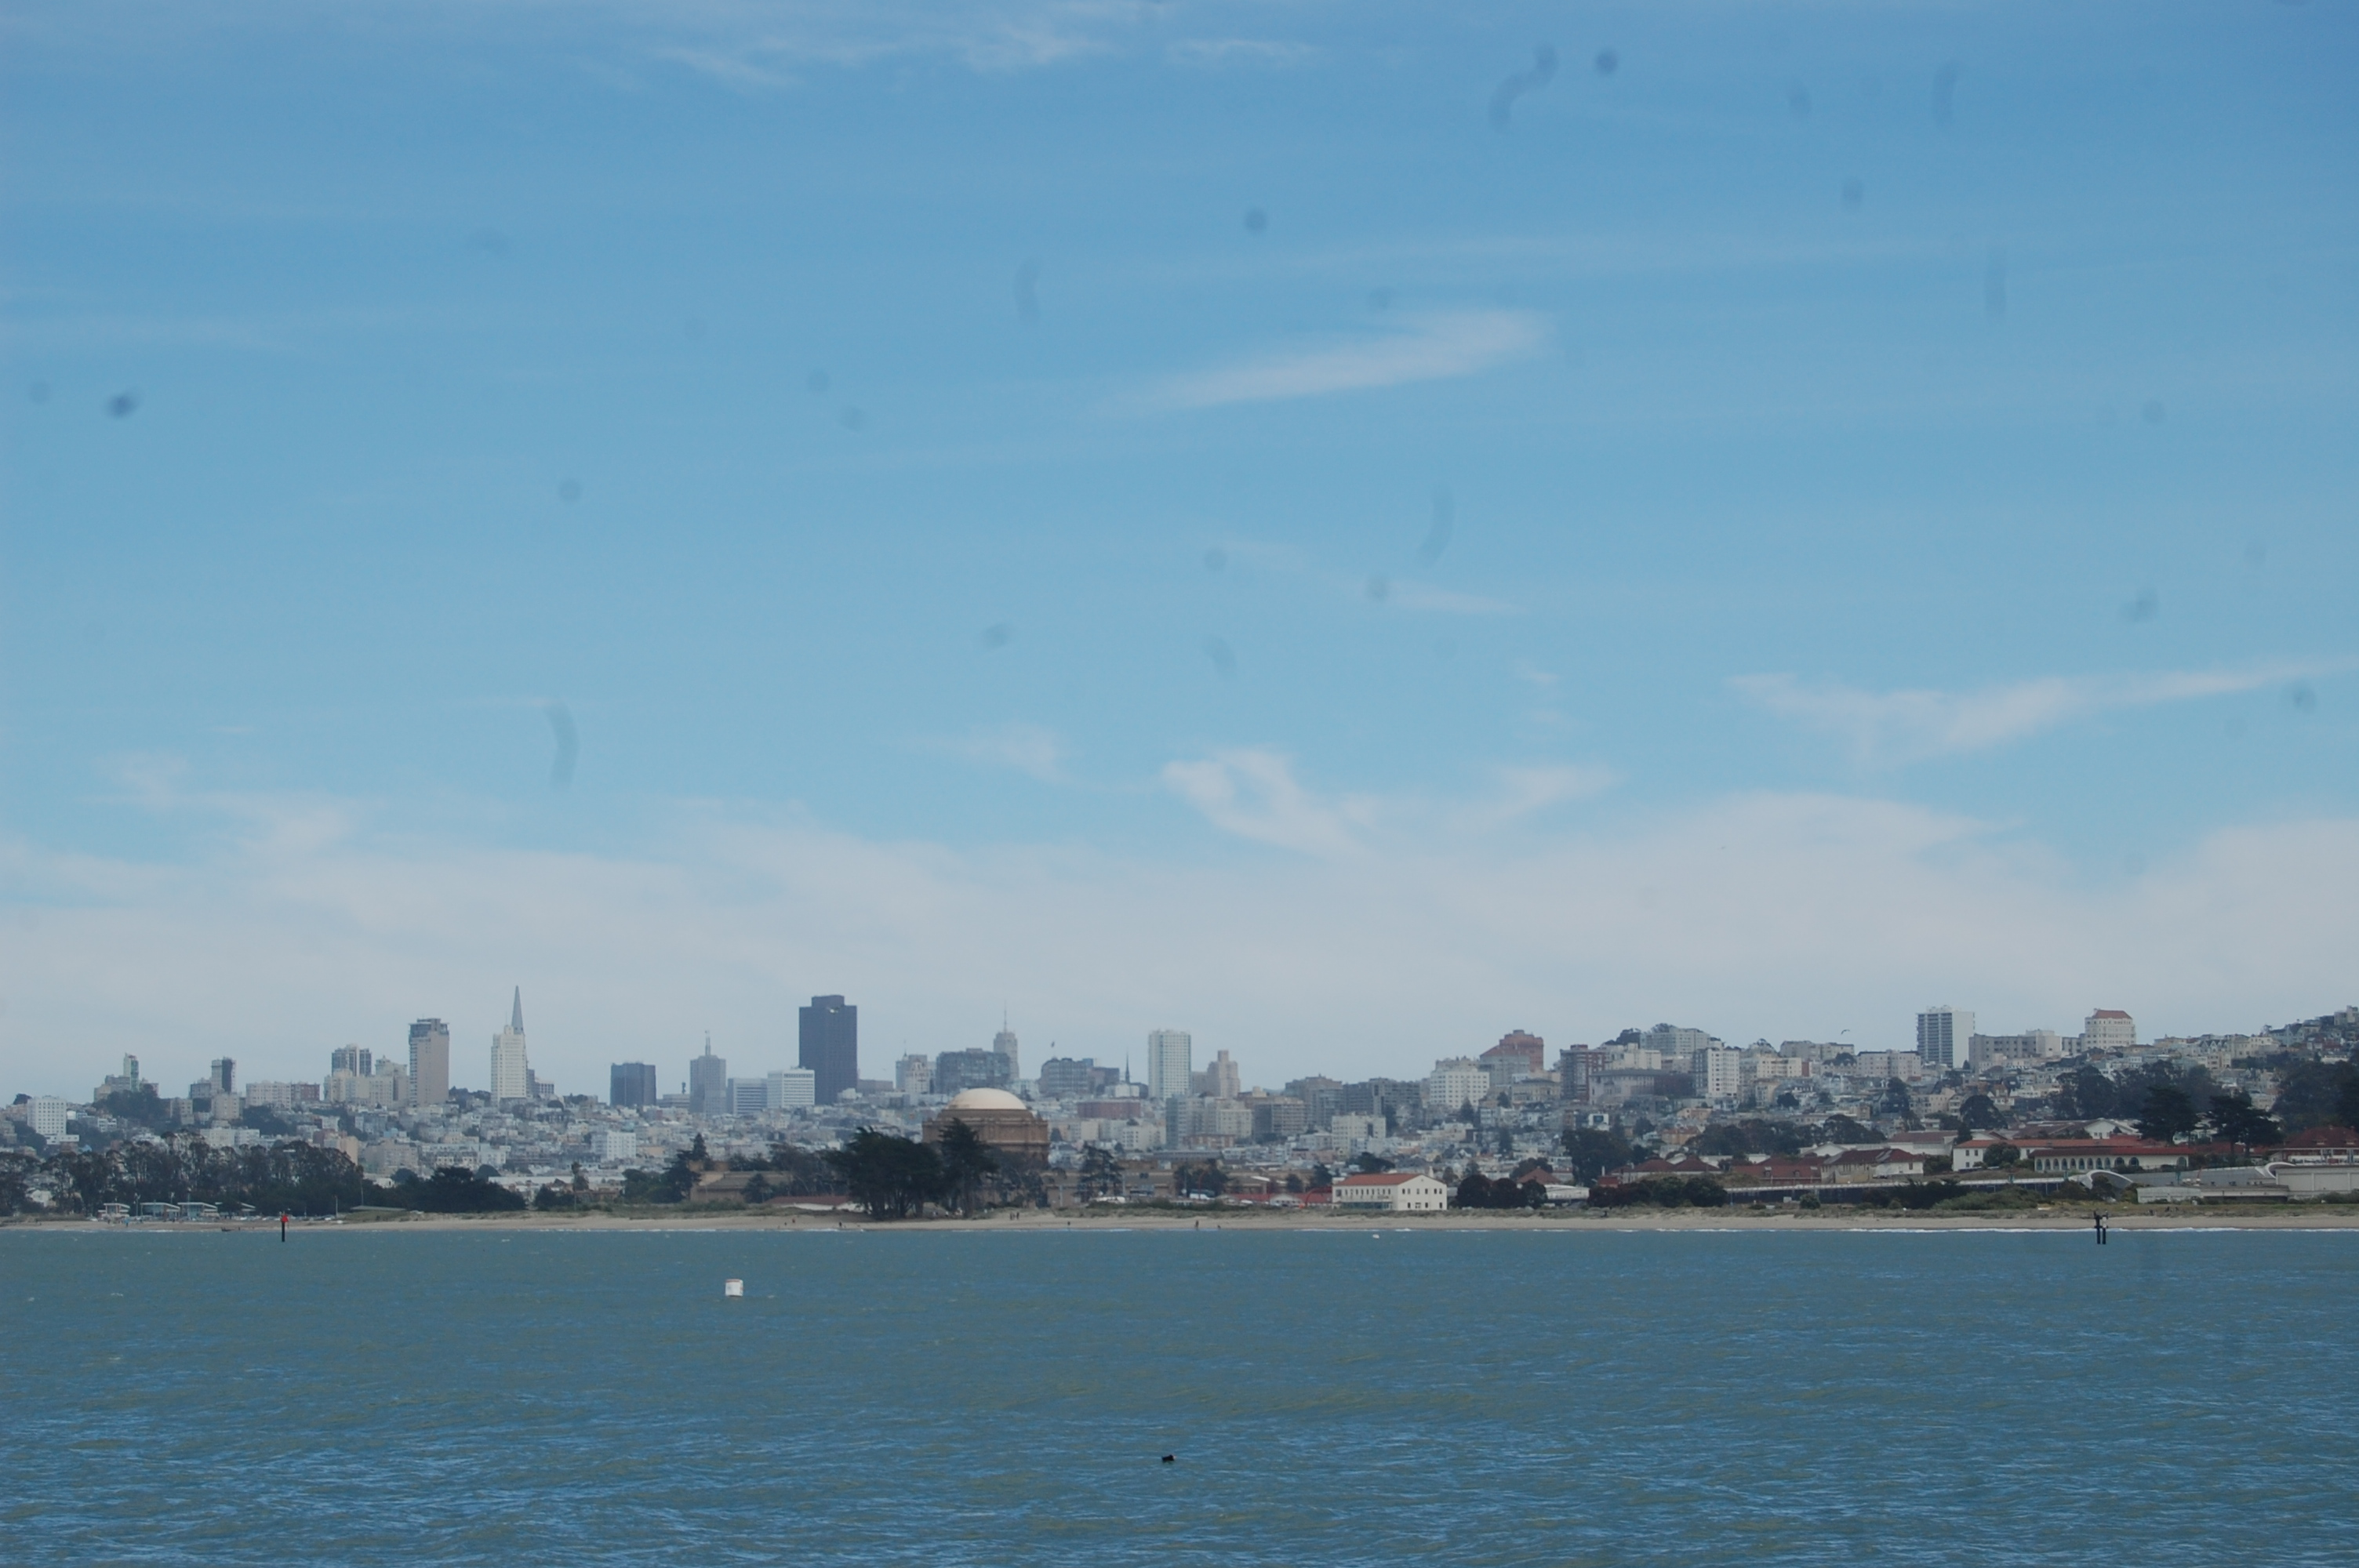 San Francisco Bay and Background View